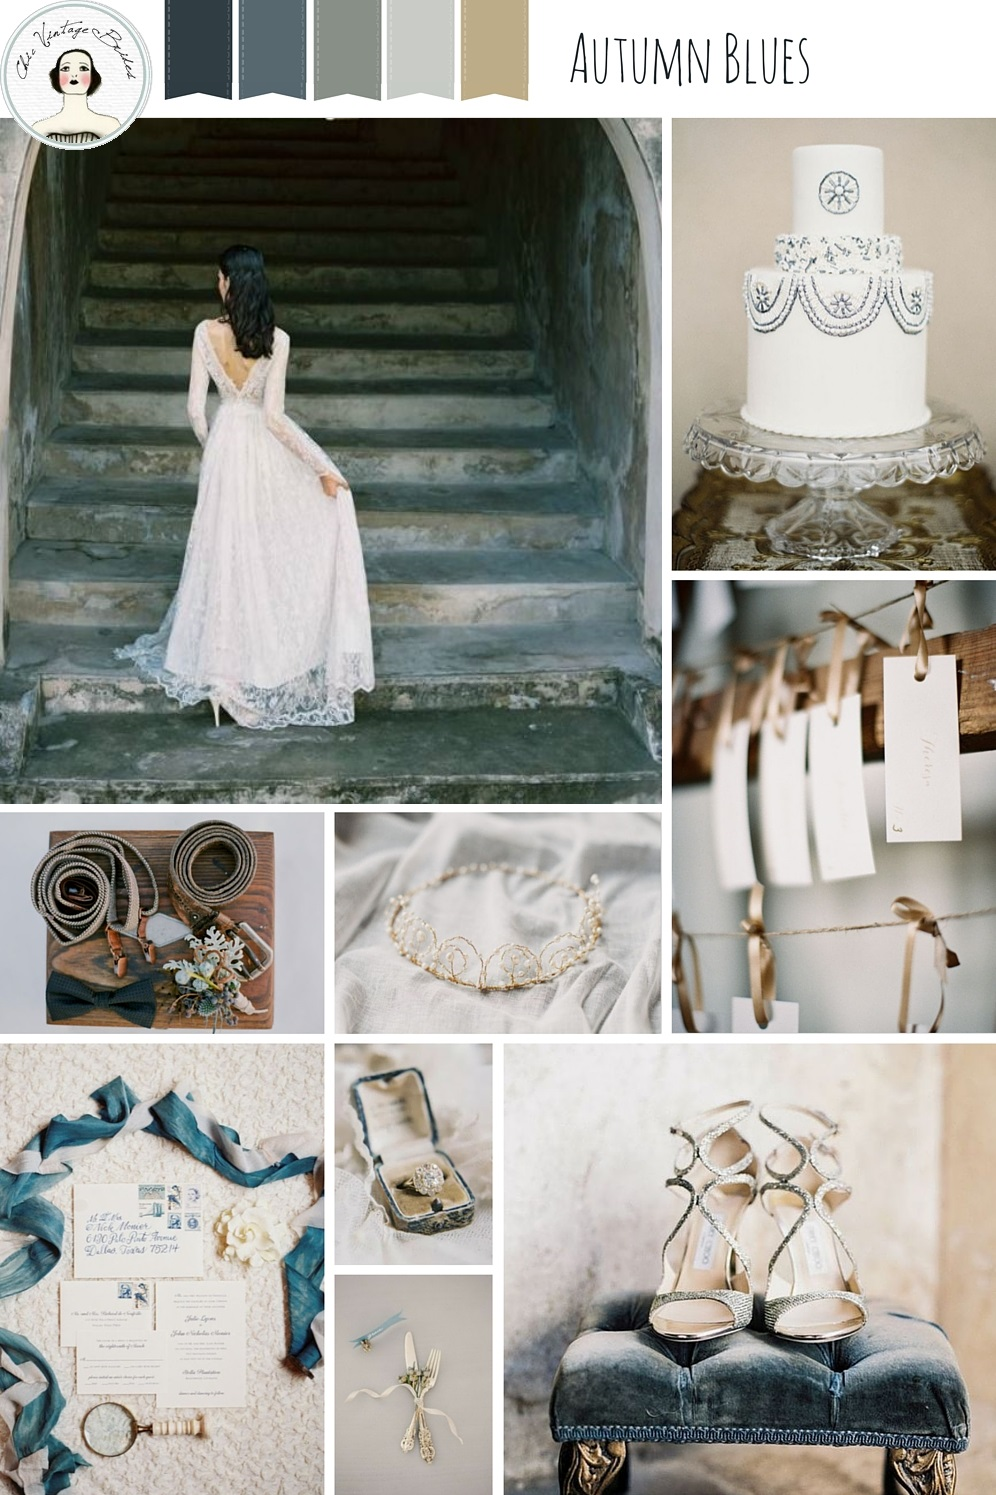 Autumn Blues Wedding Inspiration Board